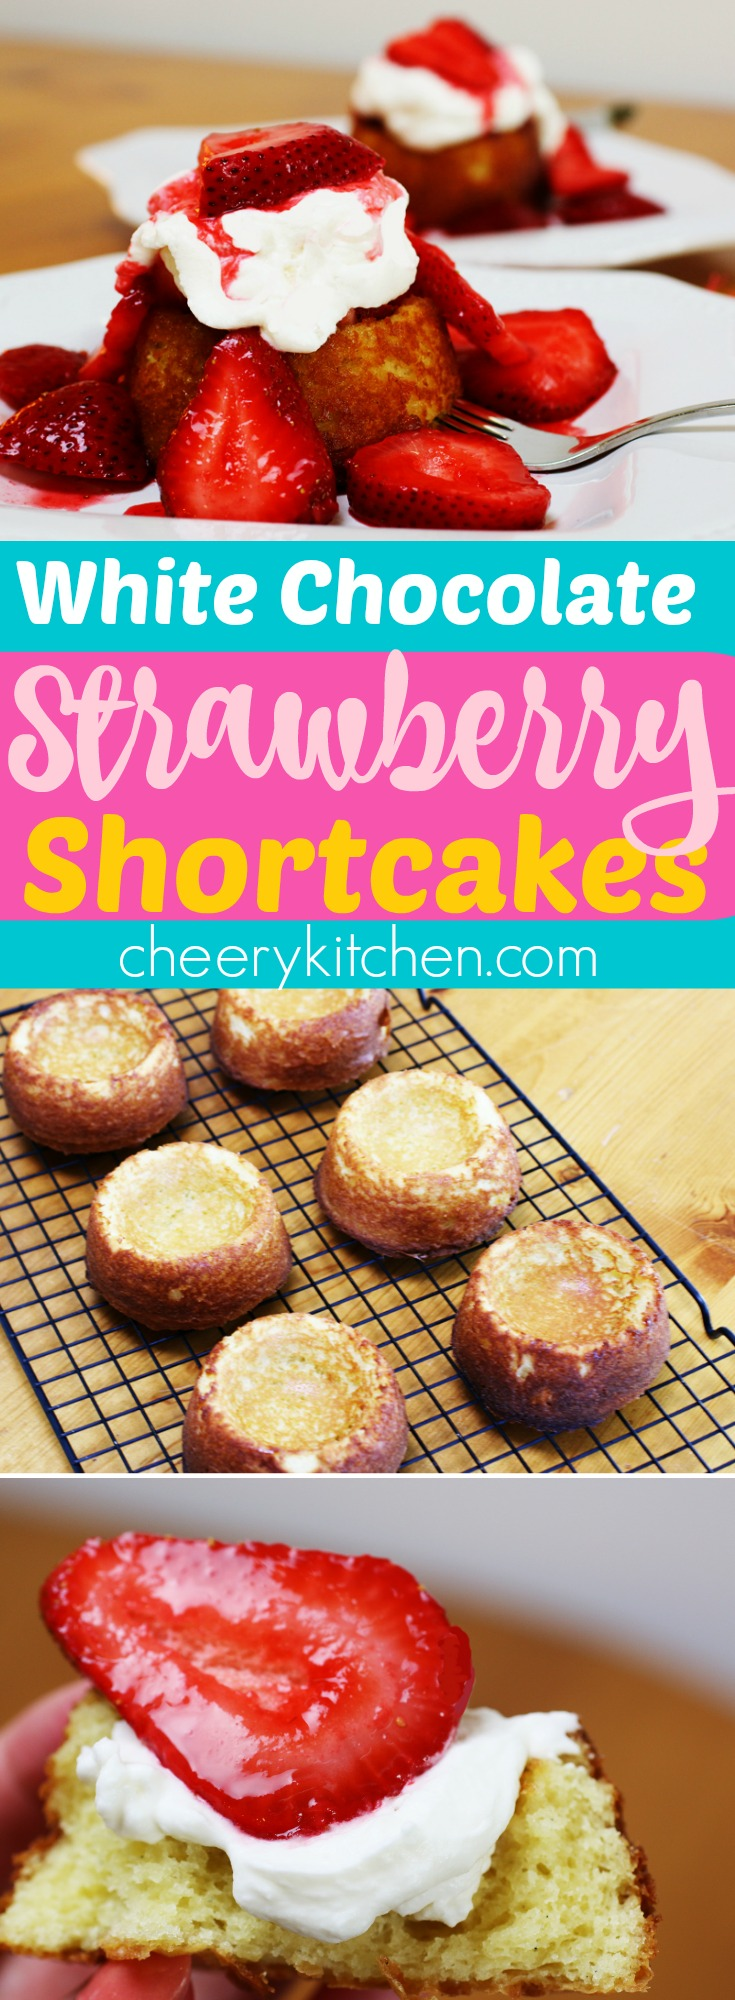 Dreaming of White Chocolate Strawberry Shortcakes, so delicious! Perfect for tea parties and dinner party finales, YUM!!!